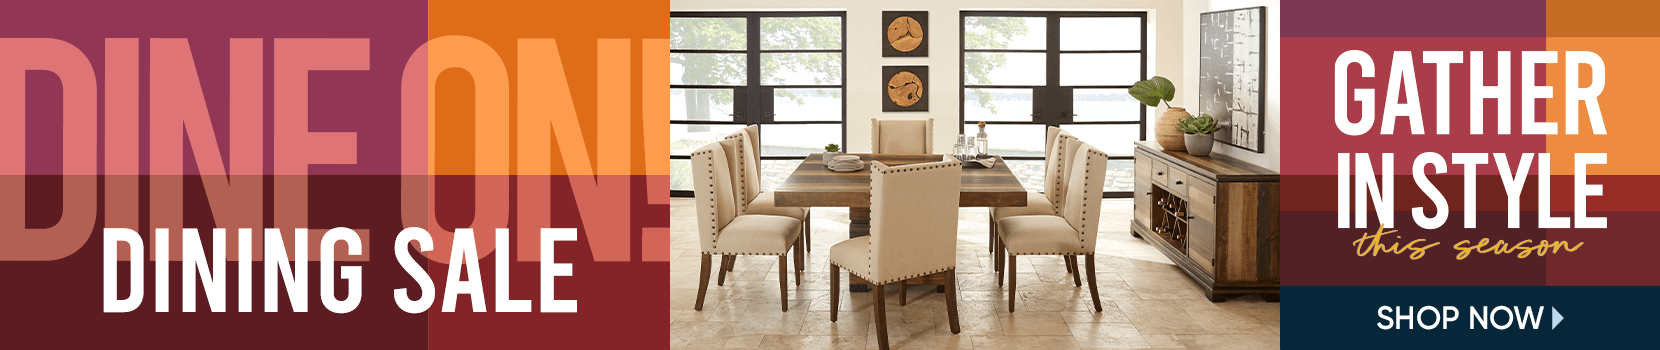 dine on this season. gather in style with big savings on beautiful dining rooms. shop now